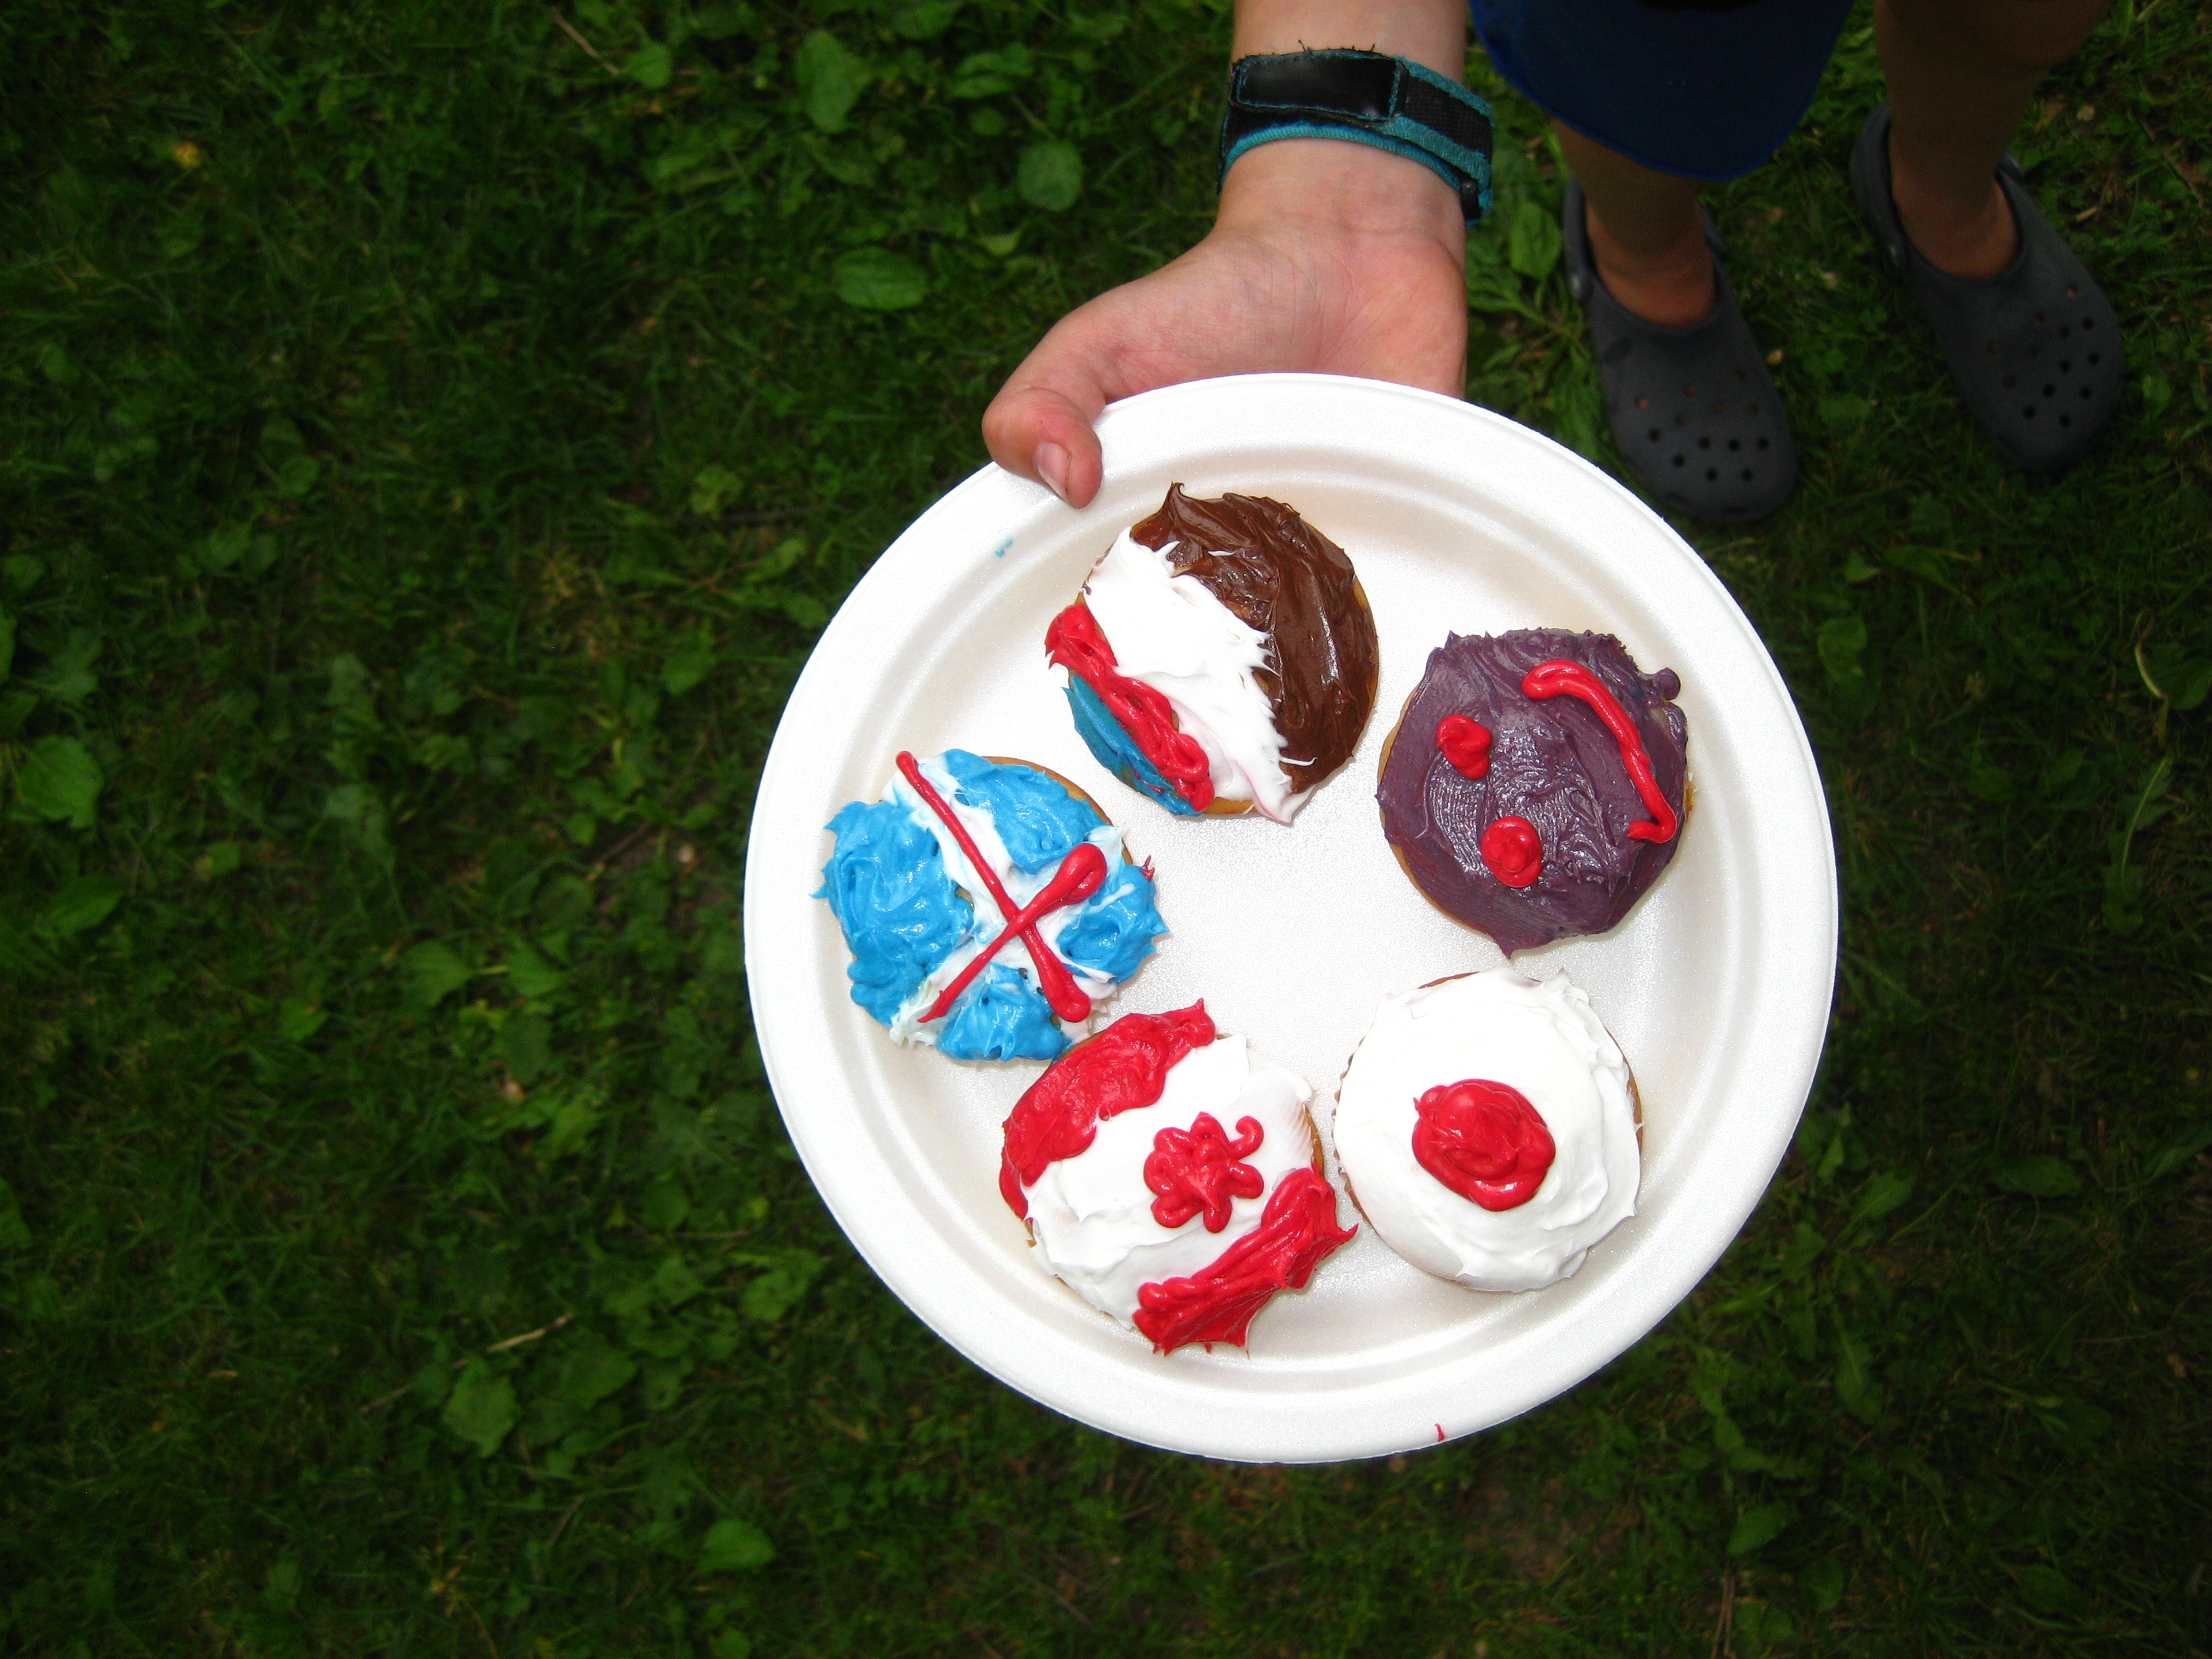 Icelandic National Day Picnic At Dufferin Grove Park